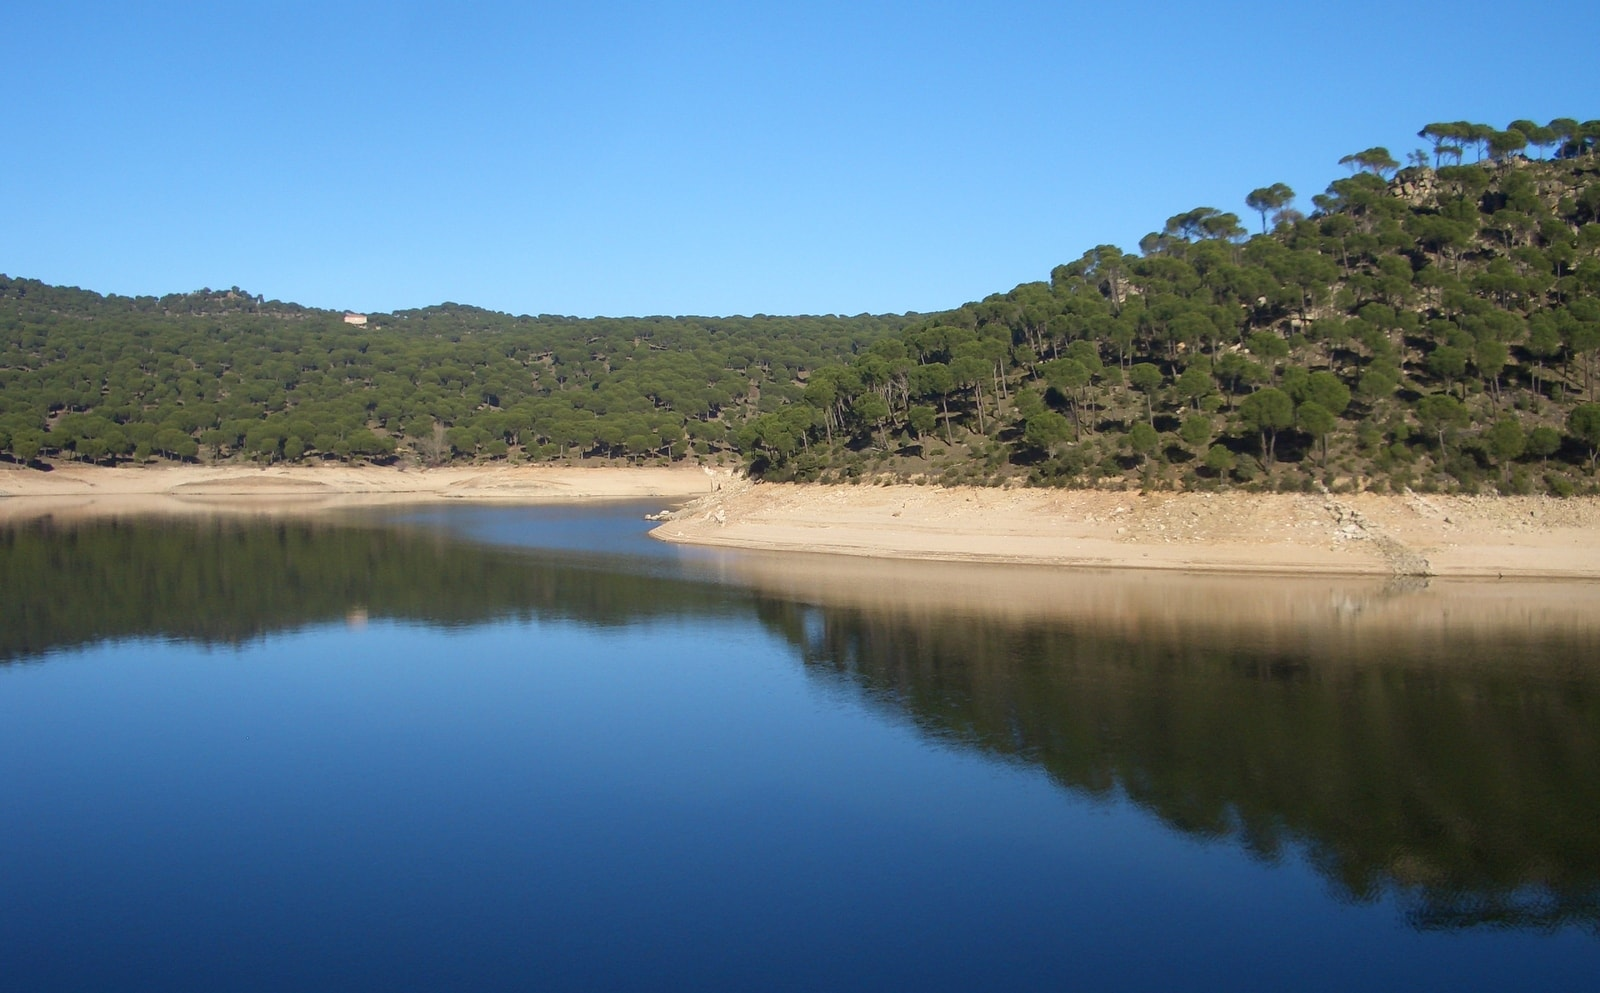 Discover the San Juan reservoir and enjoy Madrid's beach this summer!